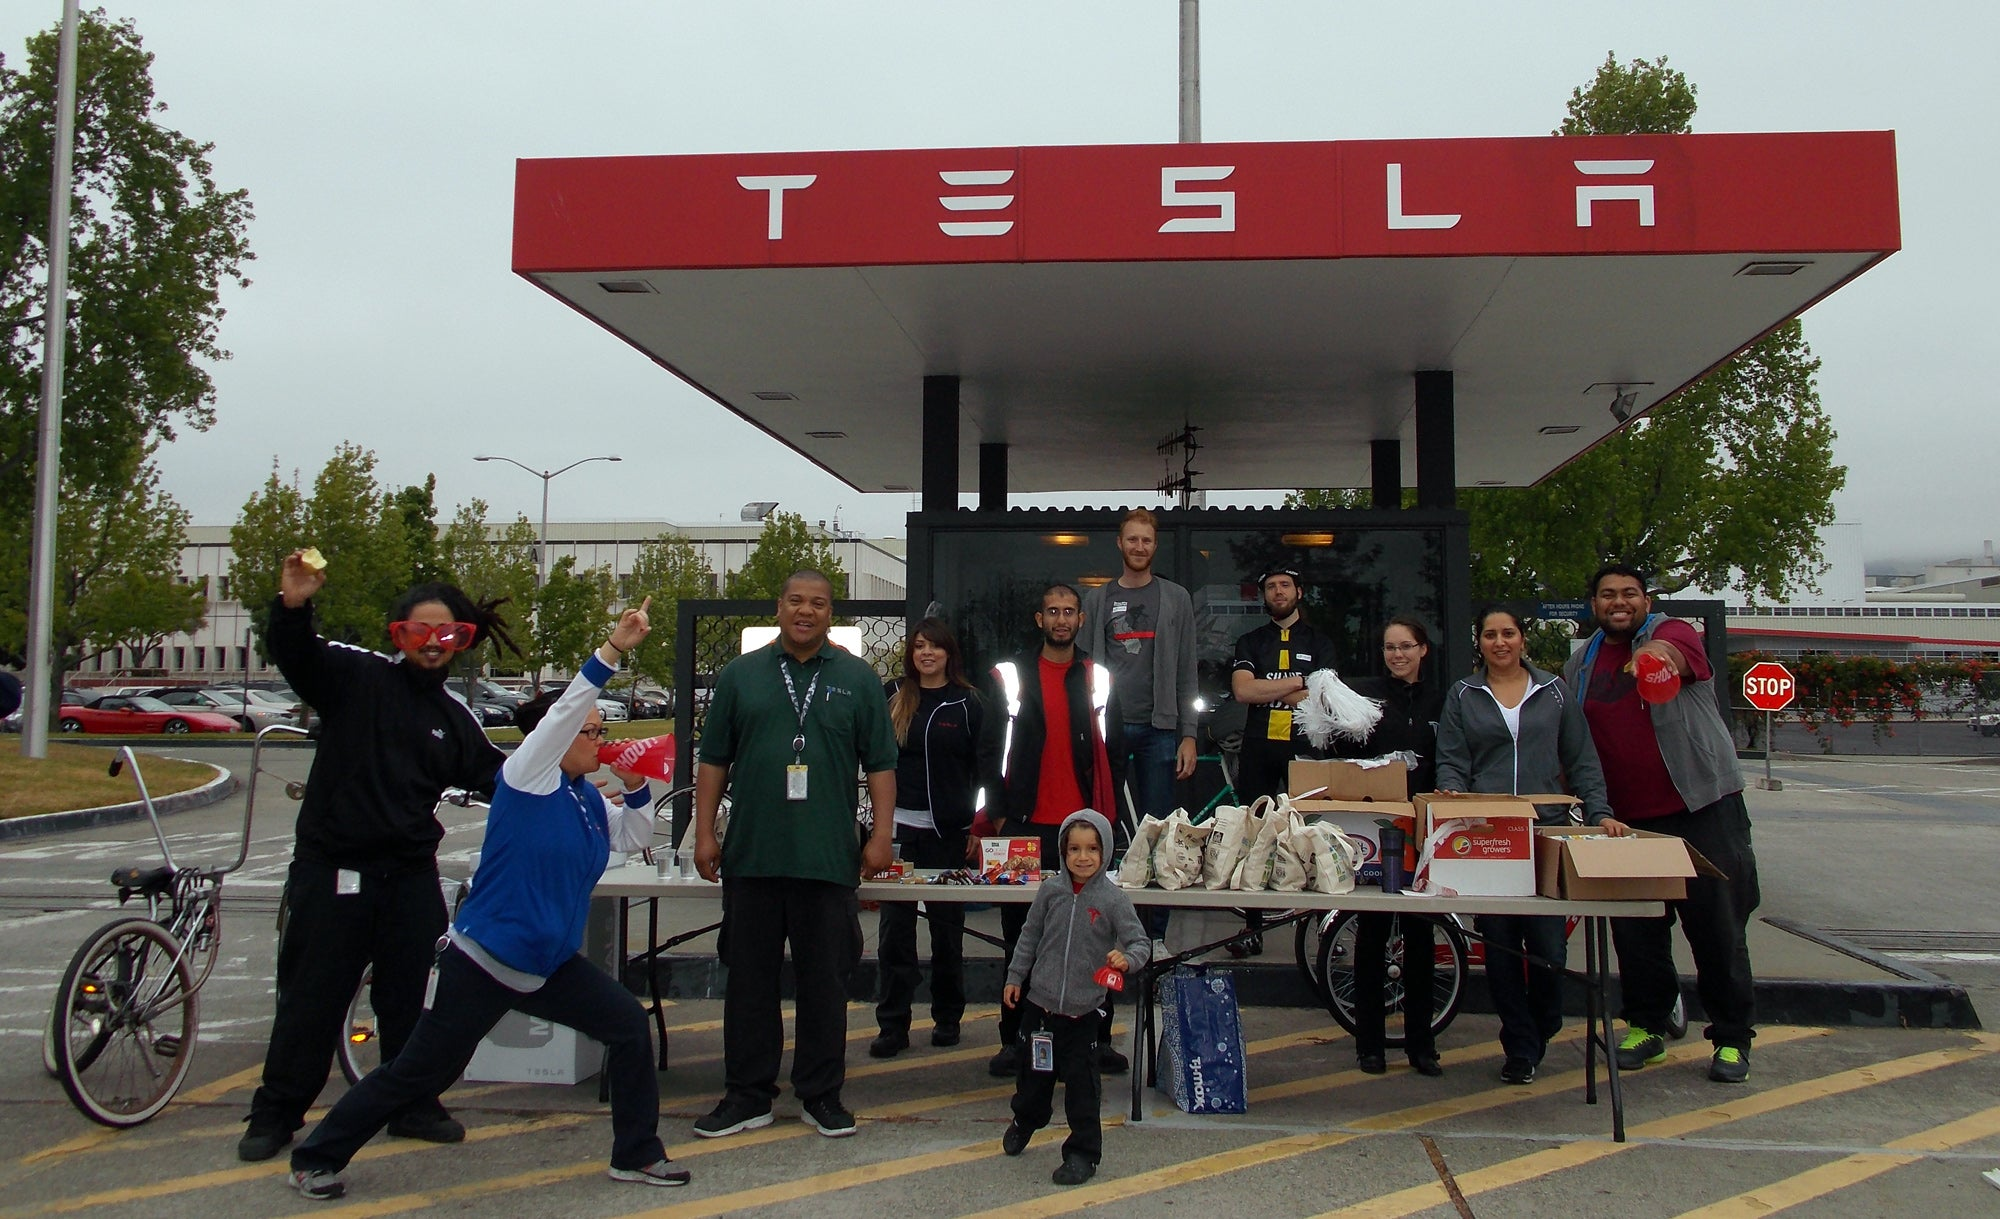 Electric vehicle manufacturer Tesla Motors did its part by setting up an Energizer Station in front of its Fremont factory.